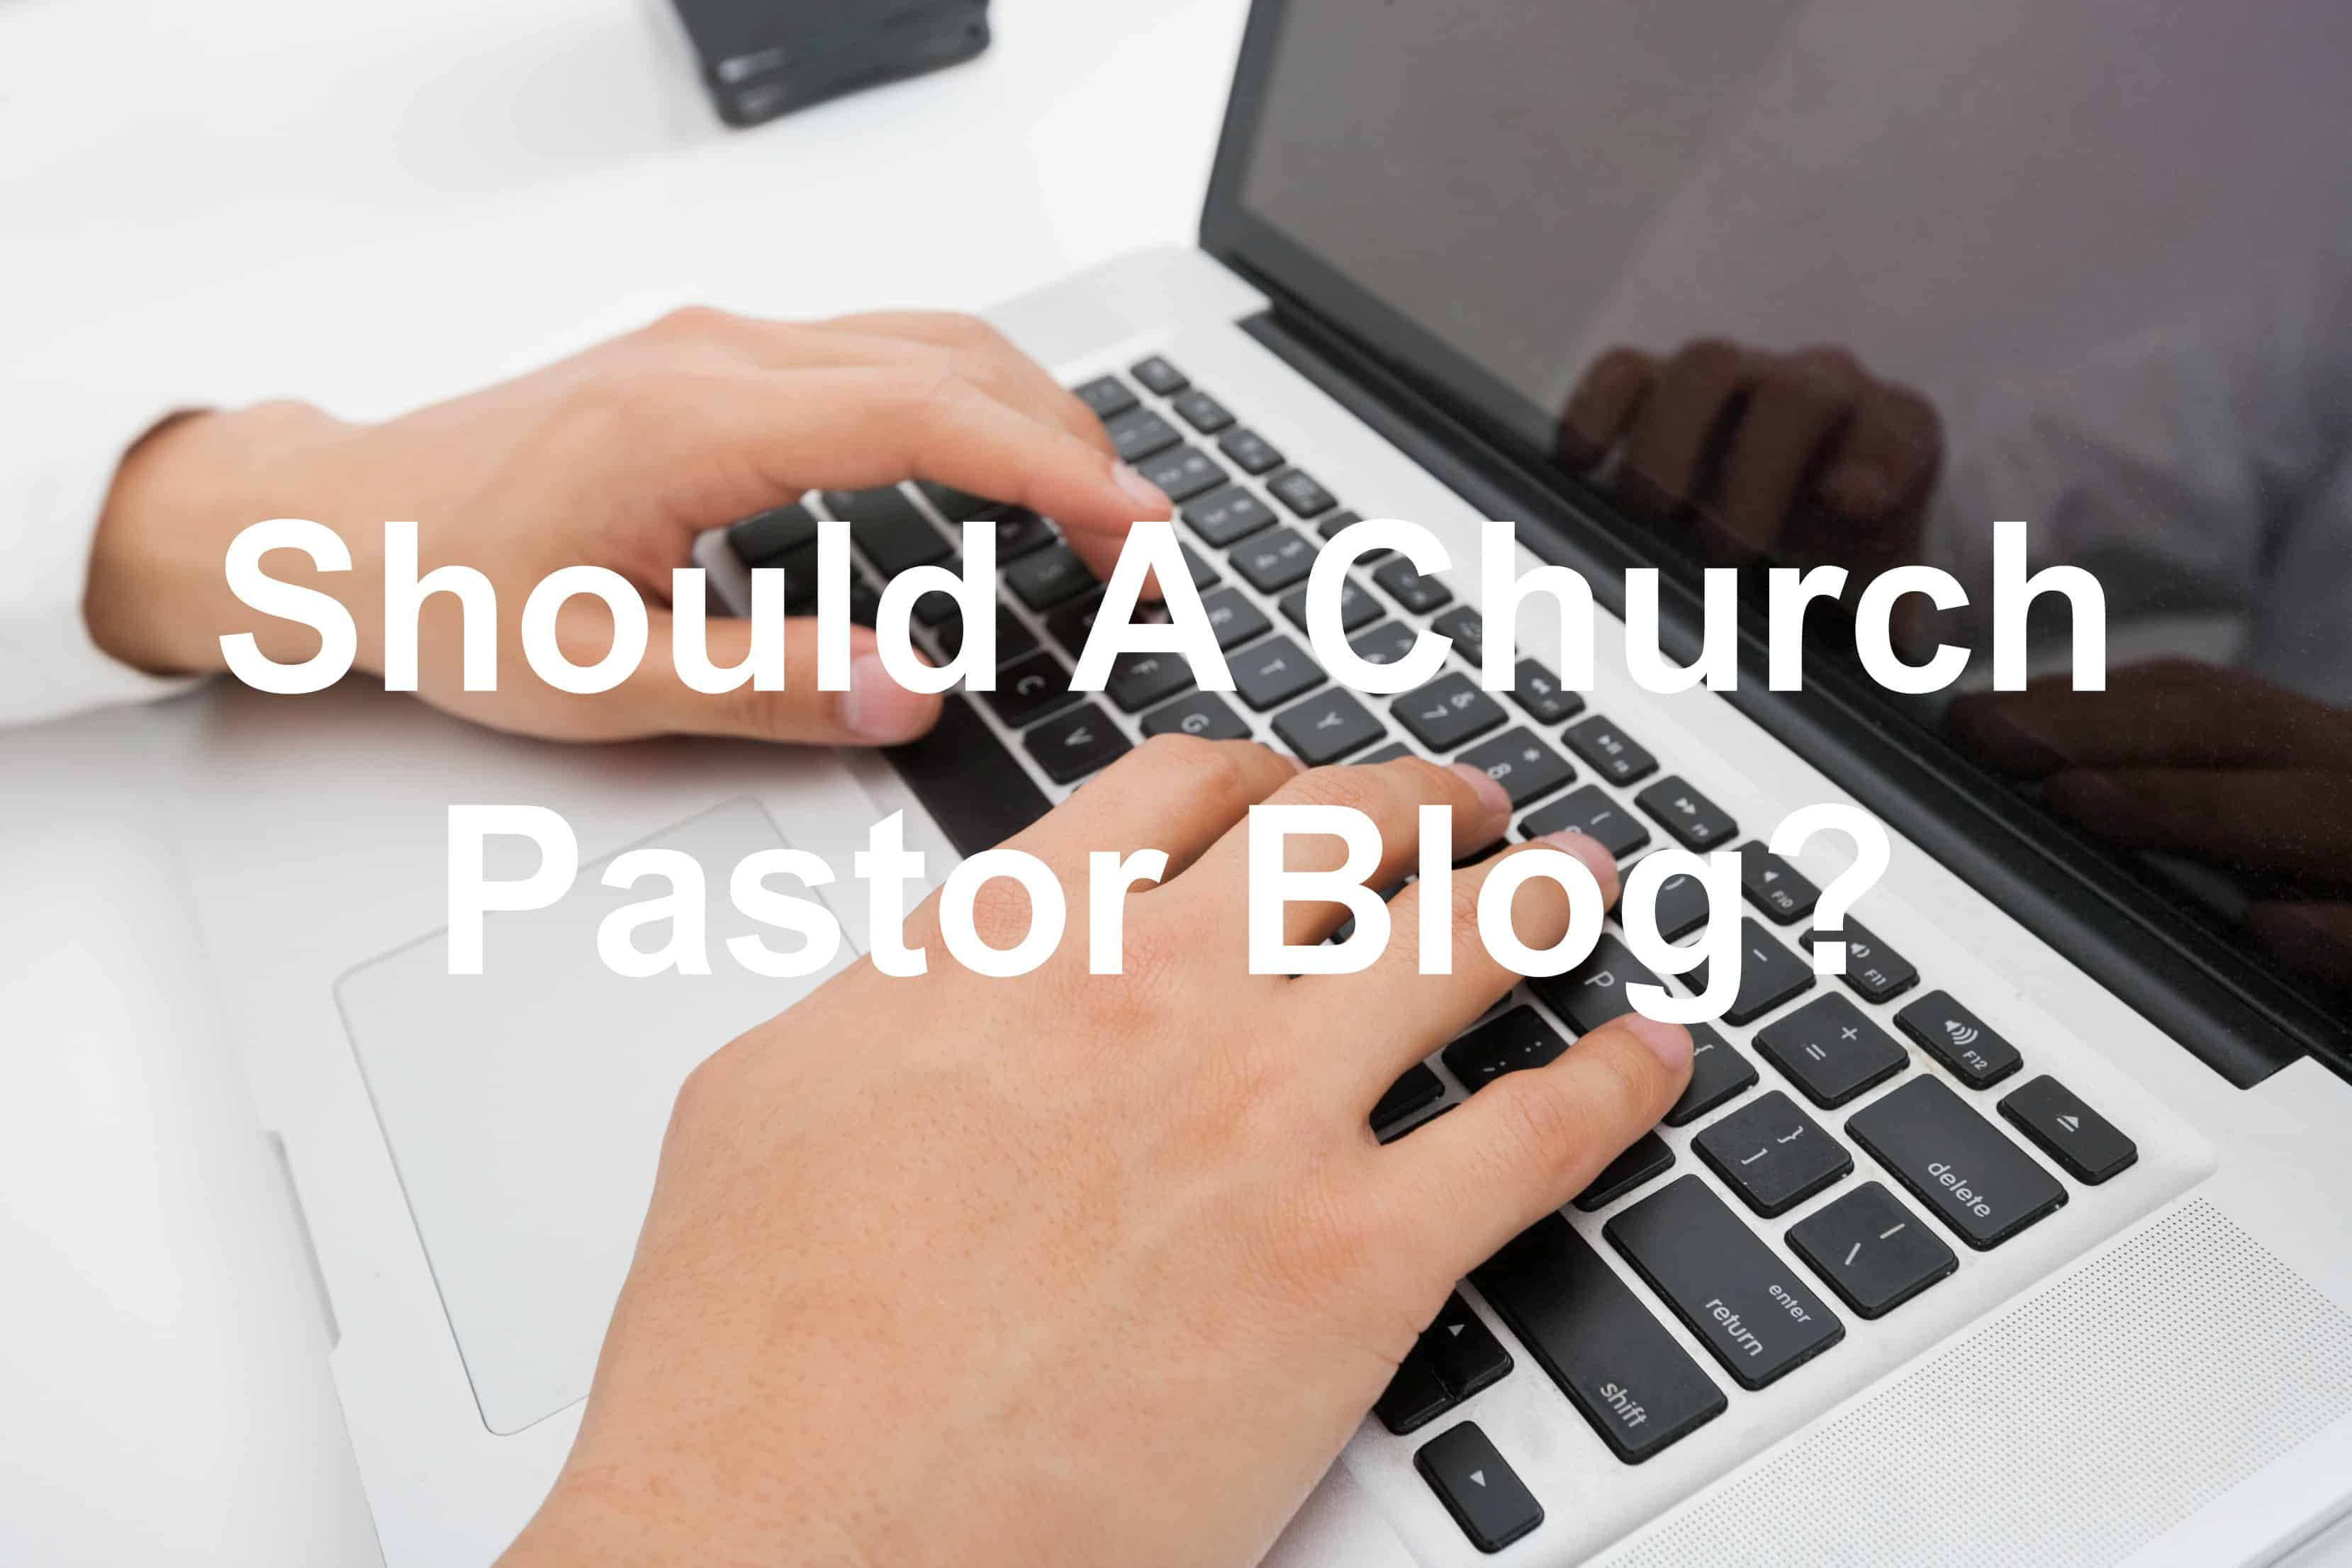 Church leaders need to have a blog